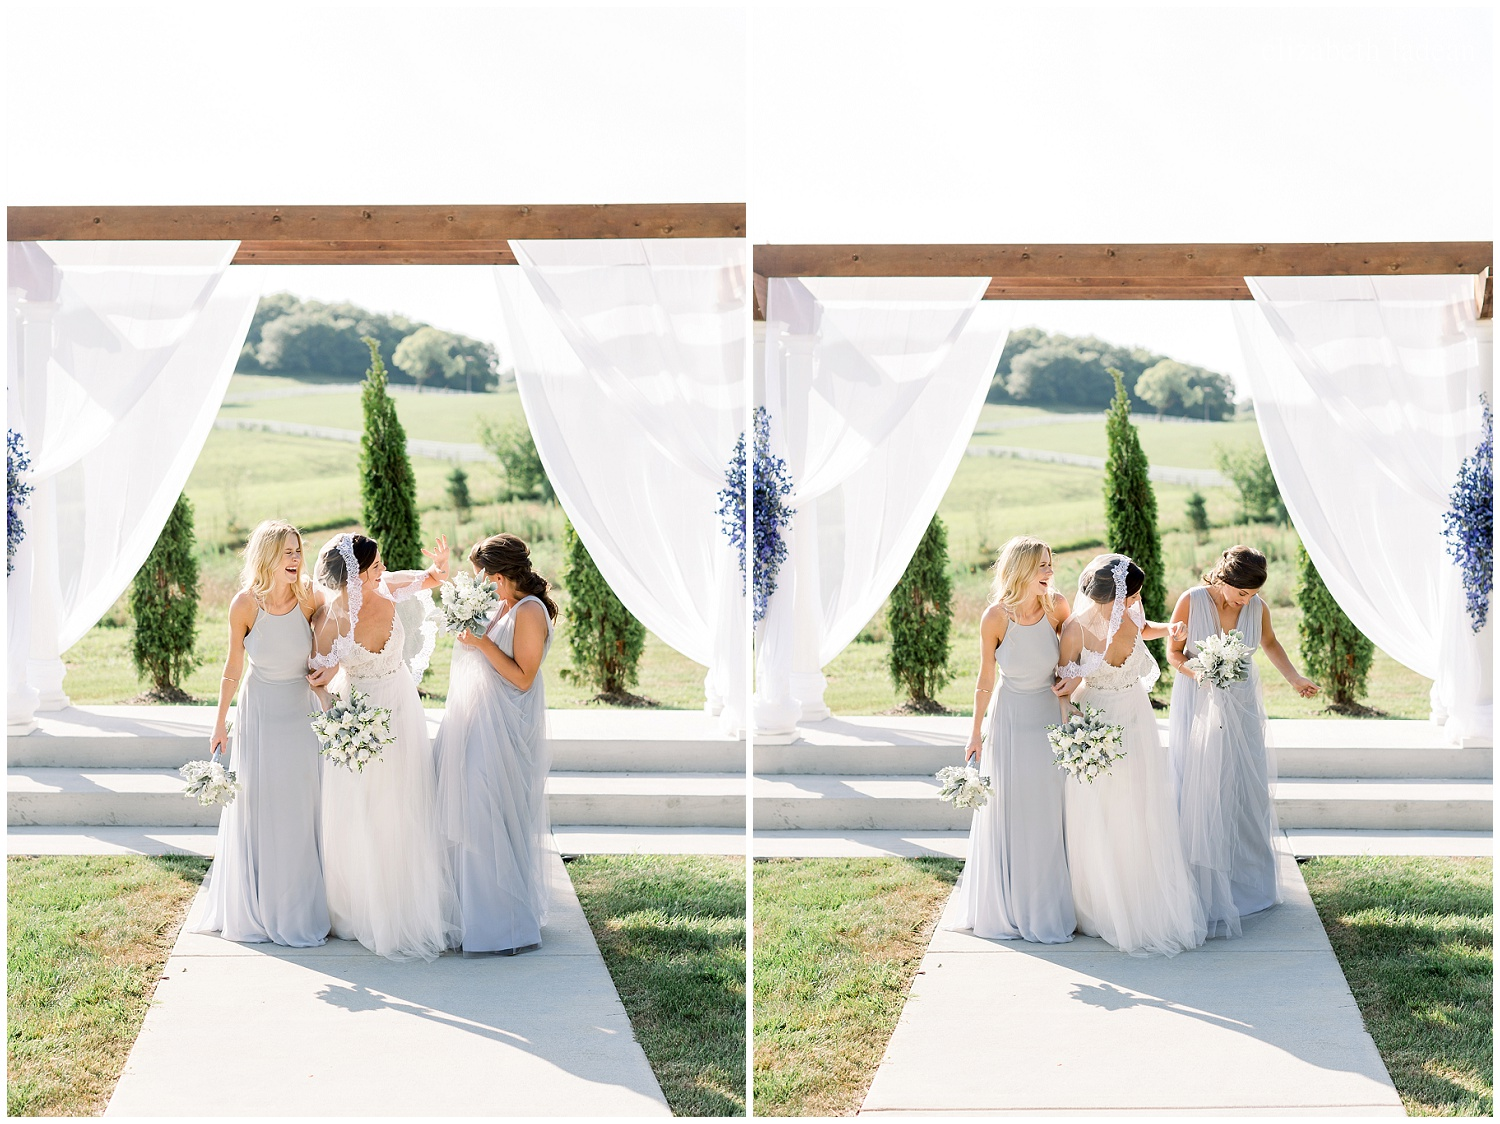 -behind-the-scenes-of-a-wedding-photographer-2018-elizabeth-ladean-photography-photo_3484.jpg